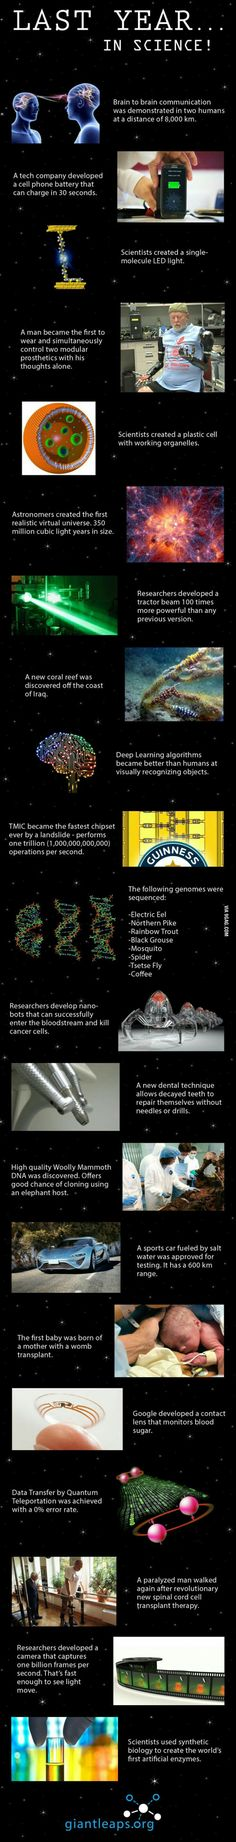 Last year scientific breakthroughs.